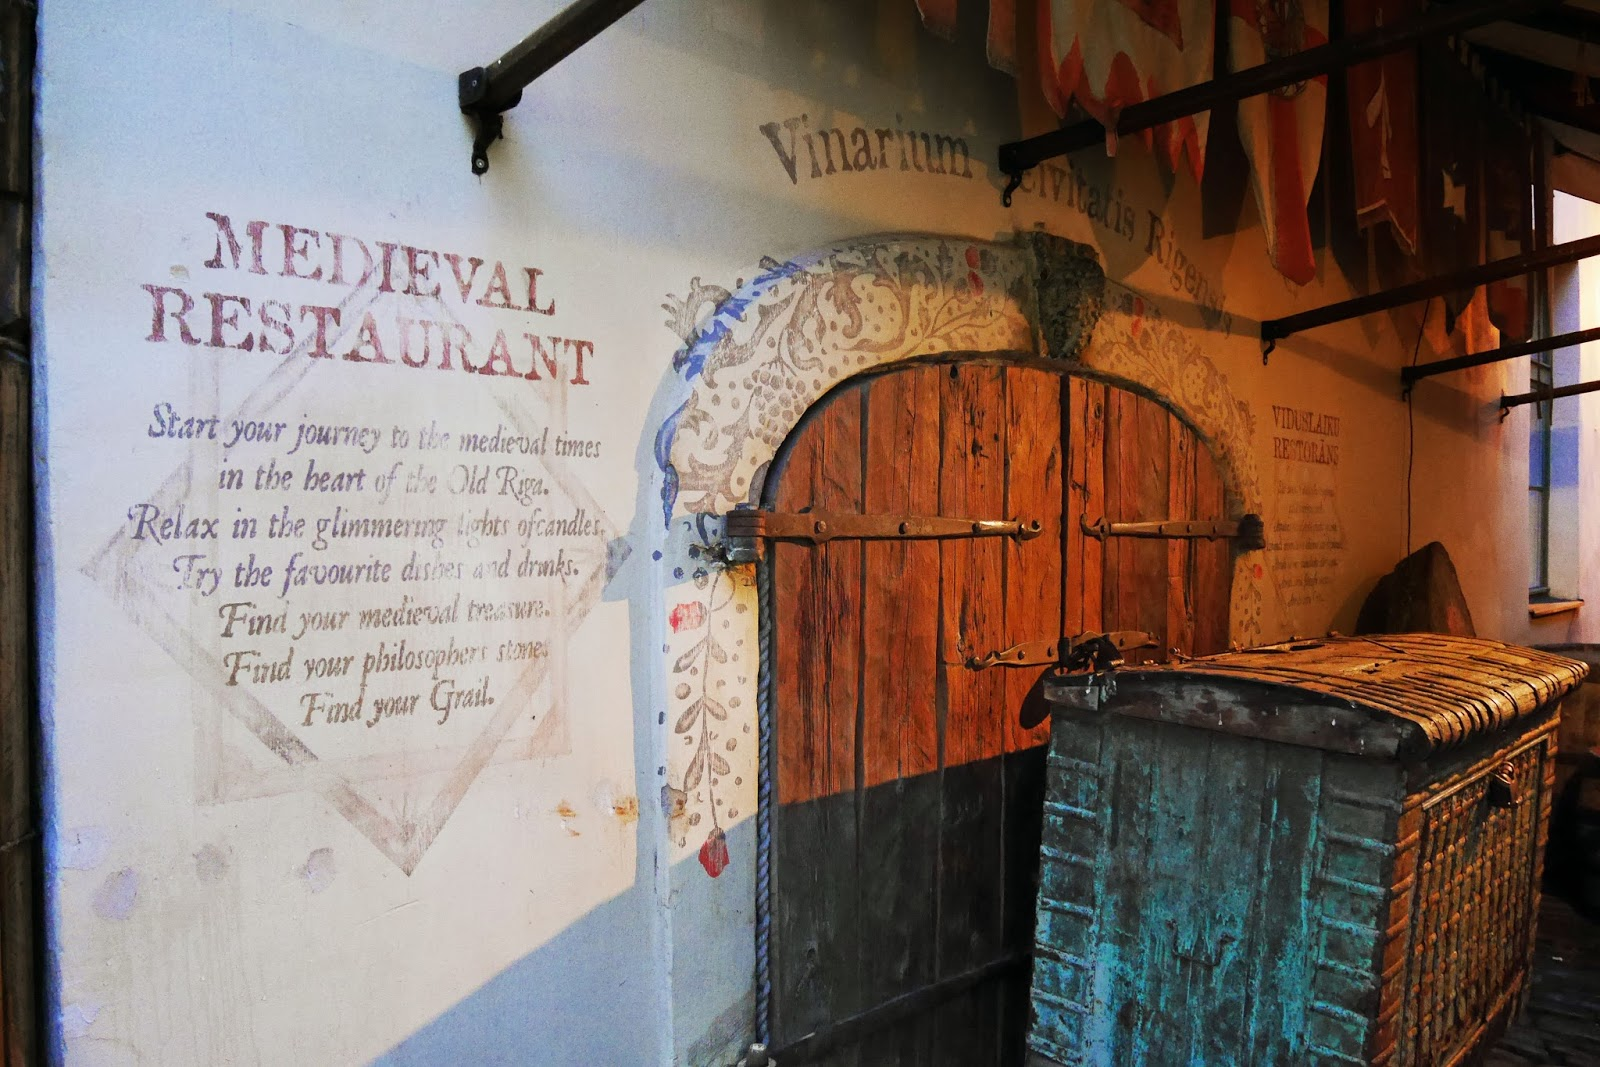 Medieval decor and signage outside Rozengrāls Medieval Restaurant in Riga, Latvia